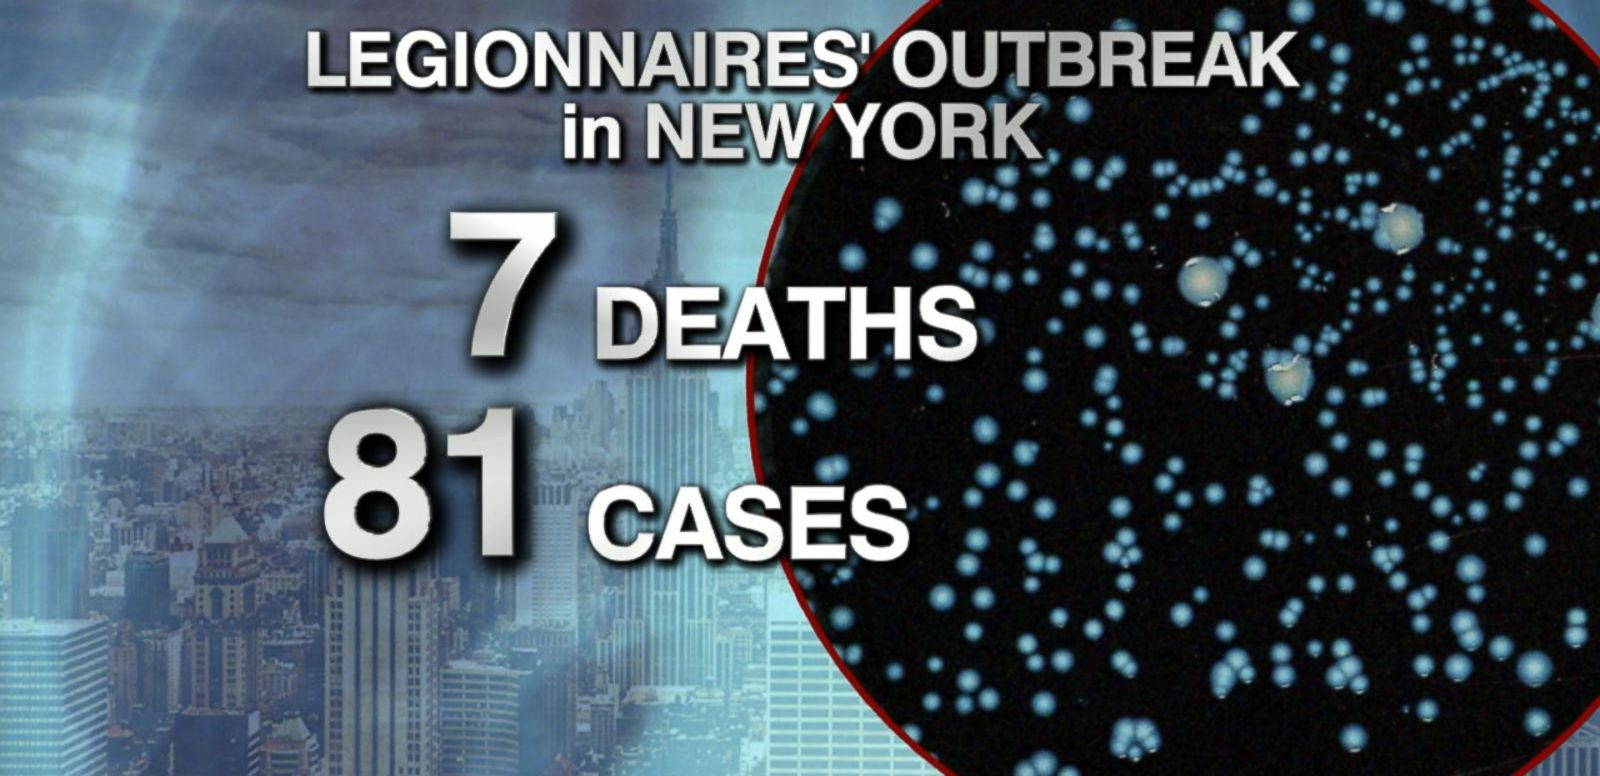 Legionnaires' Outbreak in NYC Worries Residents